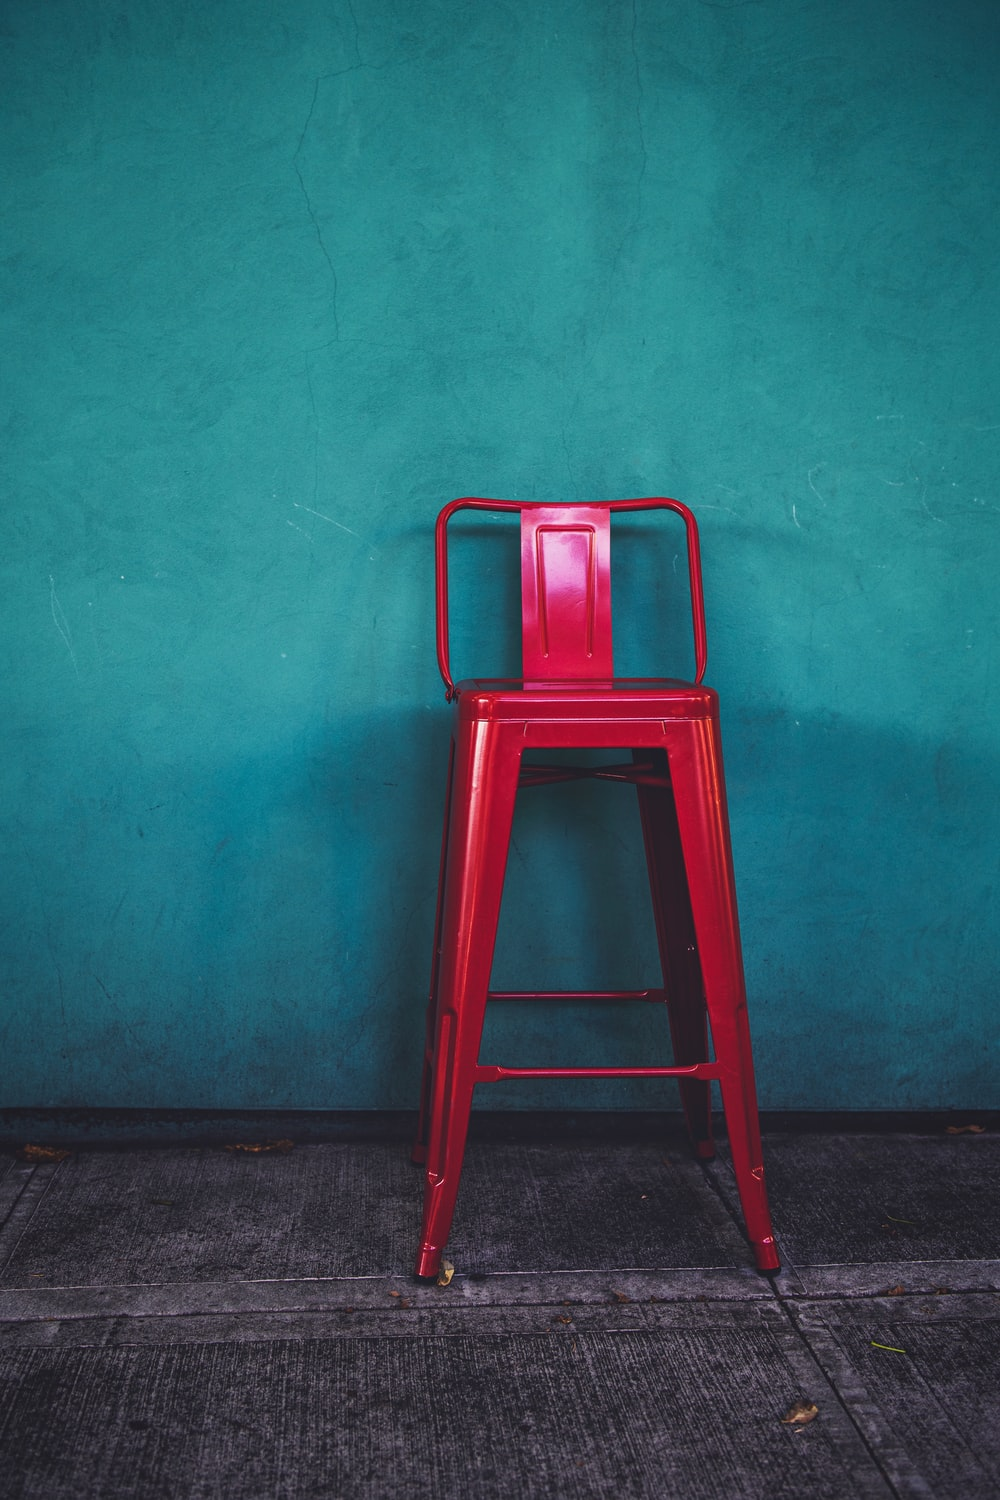 Enjoyable Red Metal Bar Chair Photo Free Chair Image On Unsplash Pdpeps Interior Chair Design Pdpepsorg